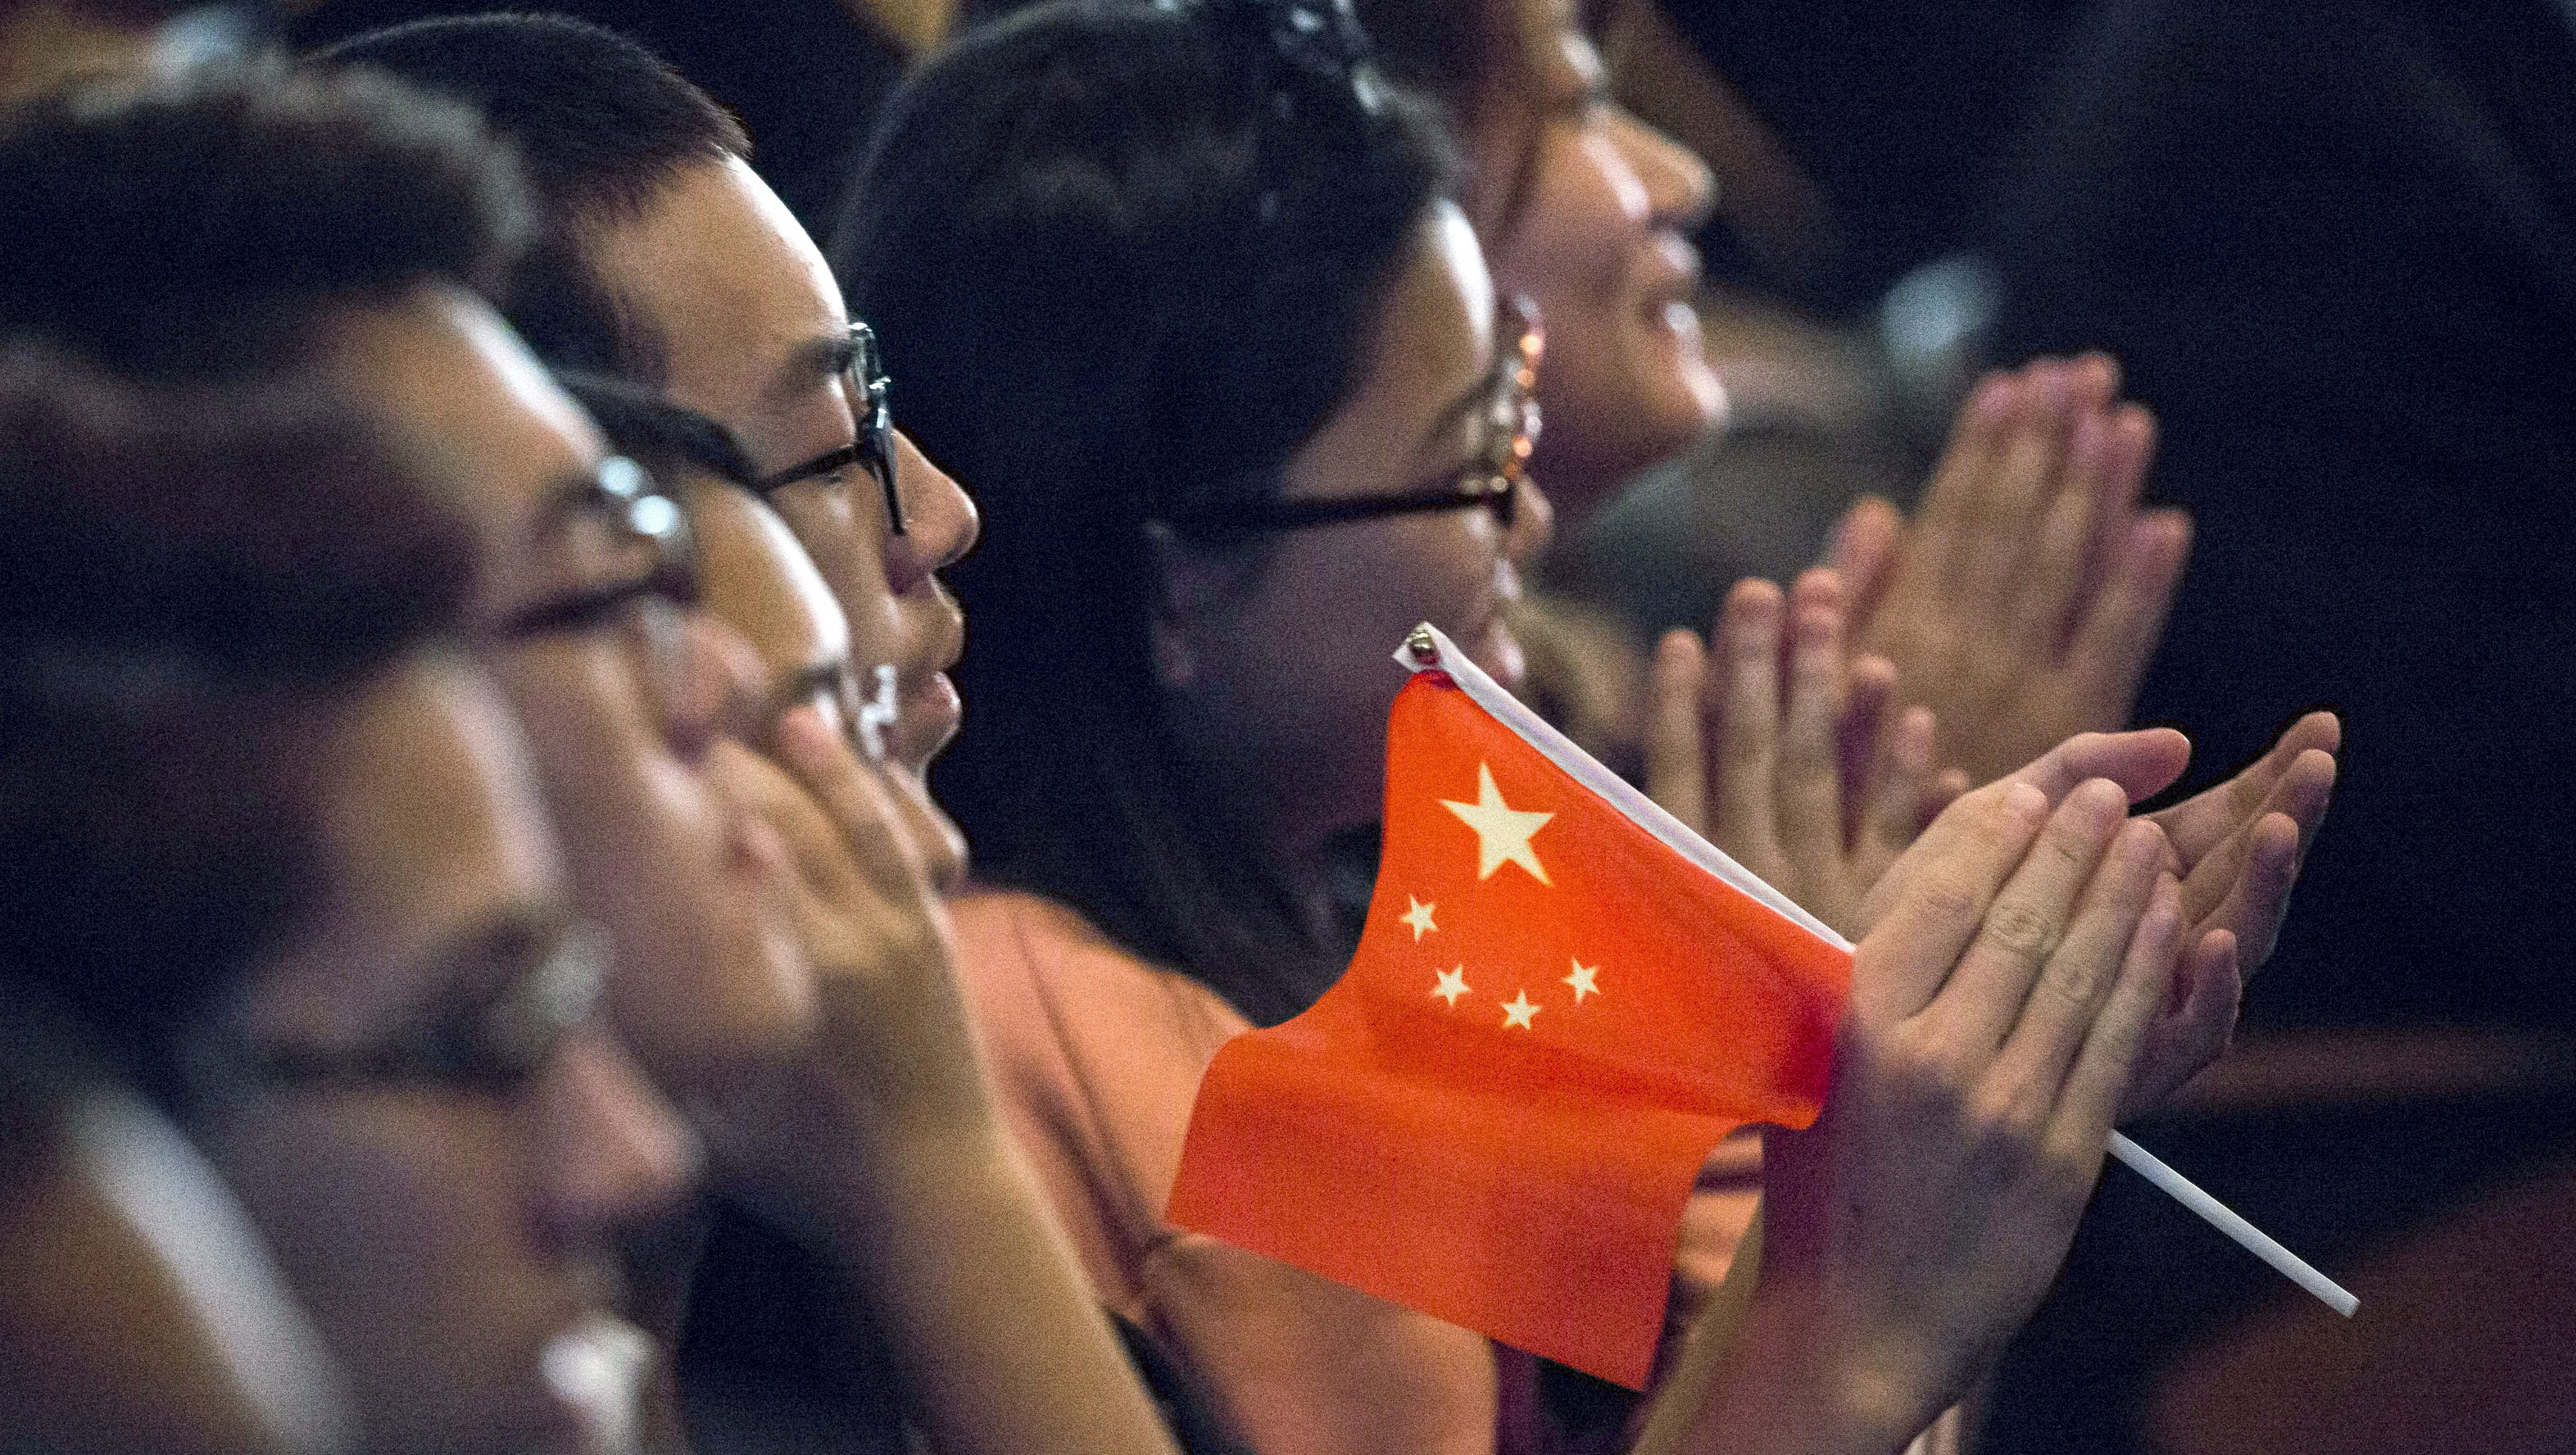 Students clap while Chinese President Xi Jinping delivers a speech during a visit to Lincoln High School in Tacoma, Washington, September 23, 2015.